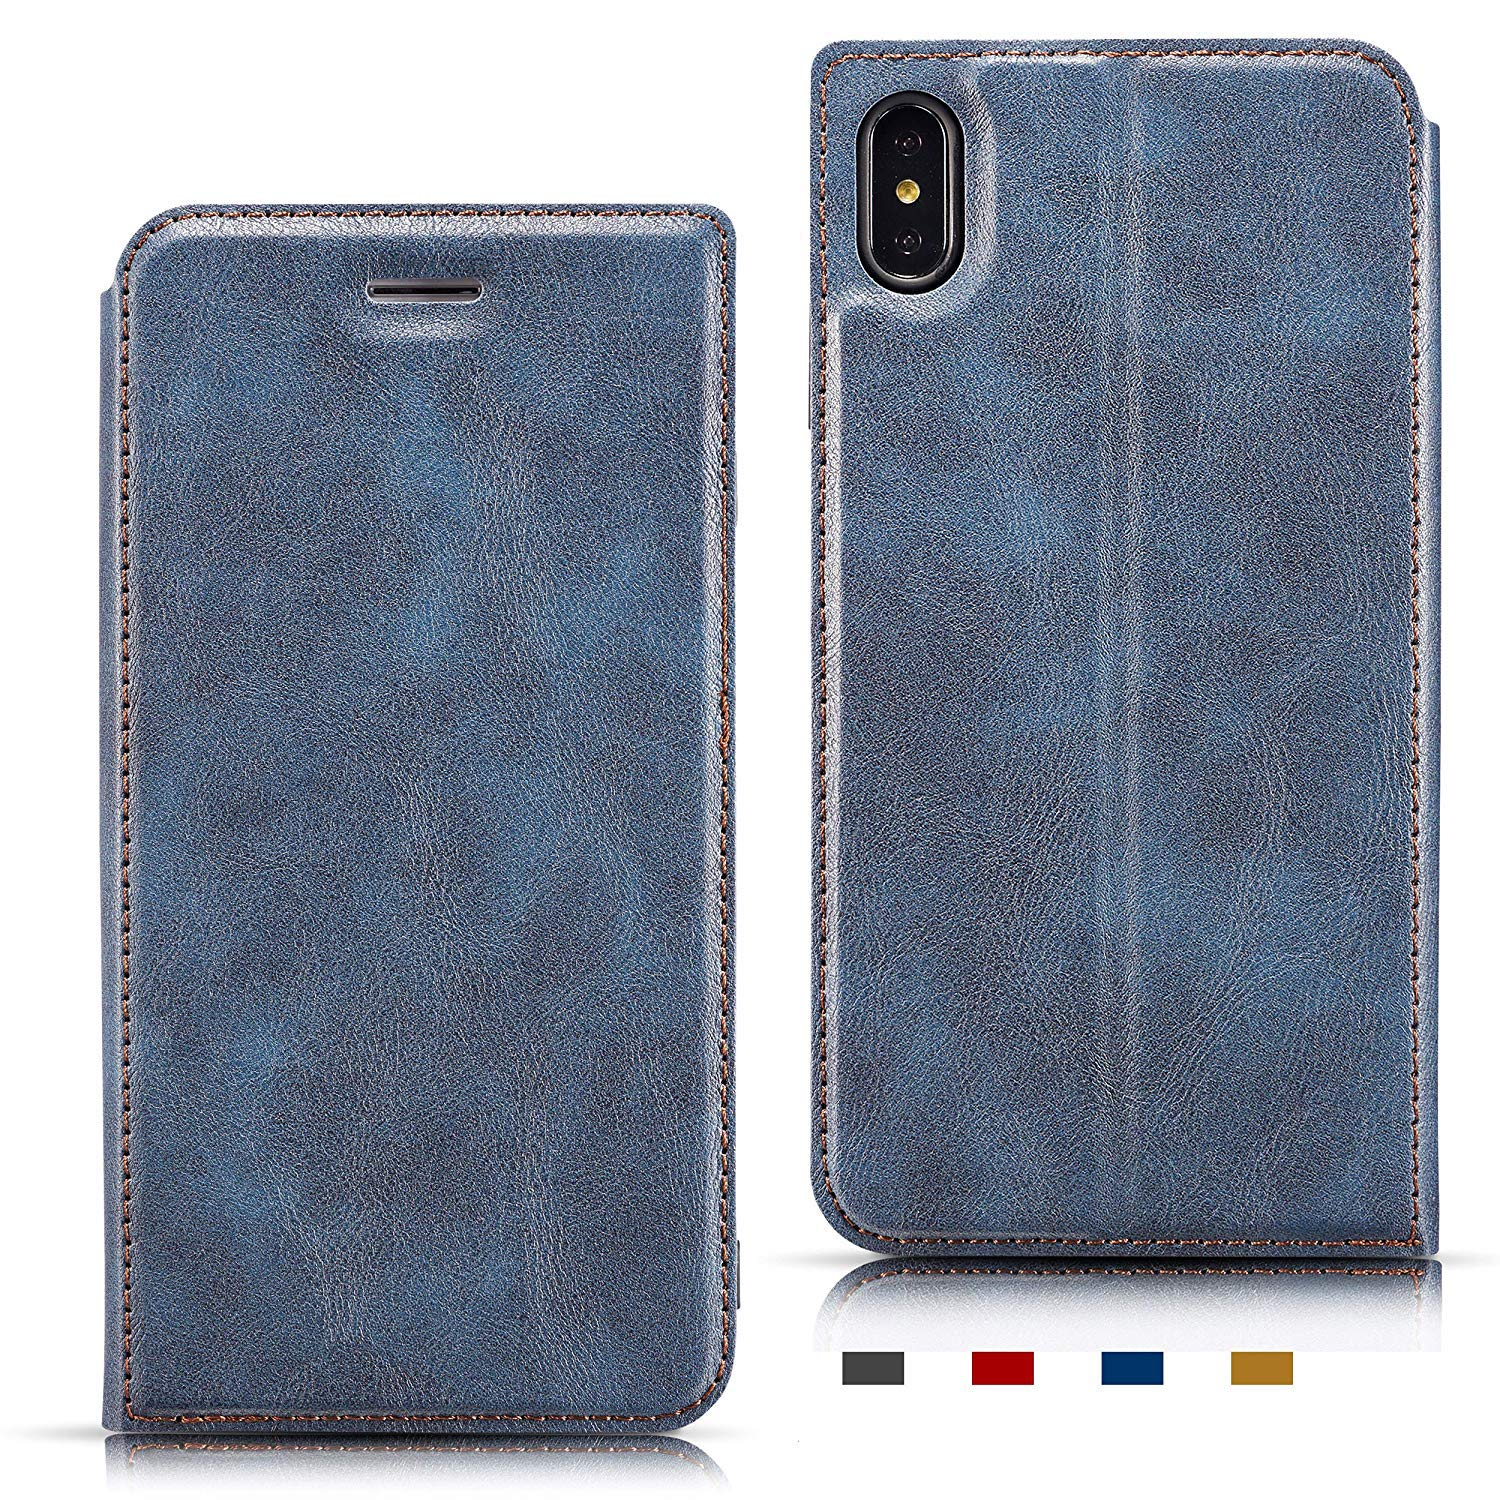 zcdaye wallet case for iphone 7